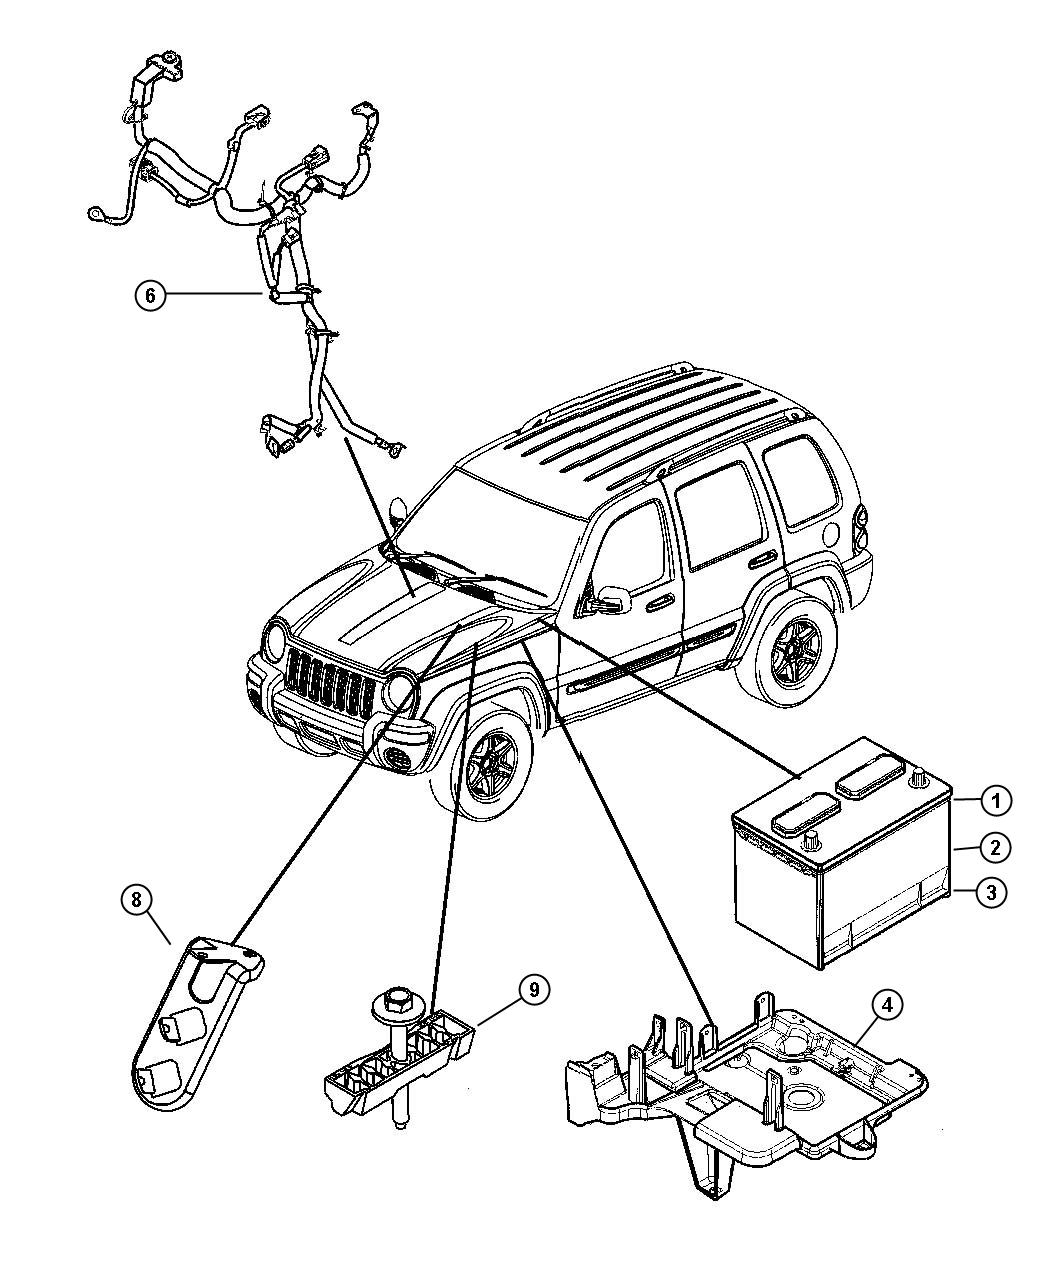 2002 Jeep Liberty Alternator Wiring Diagram Best Secret Schematic Free Engine Image Harness